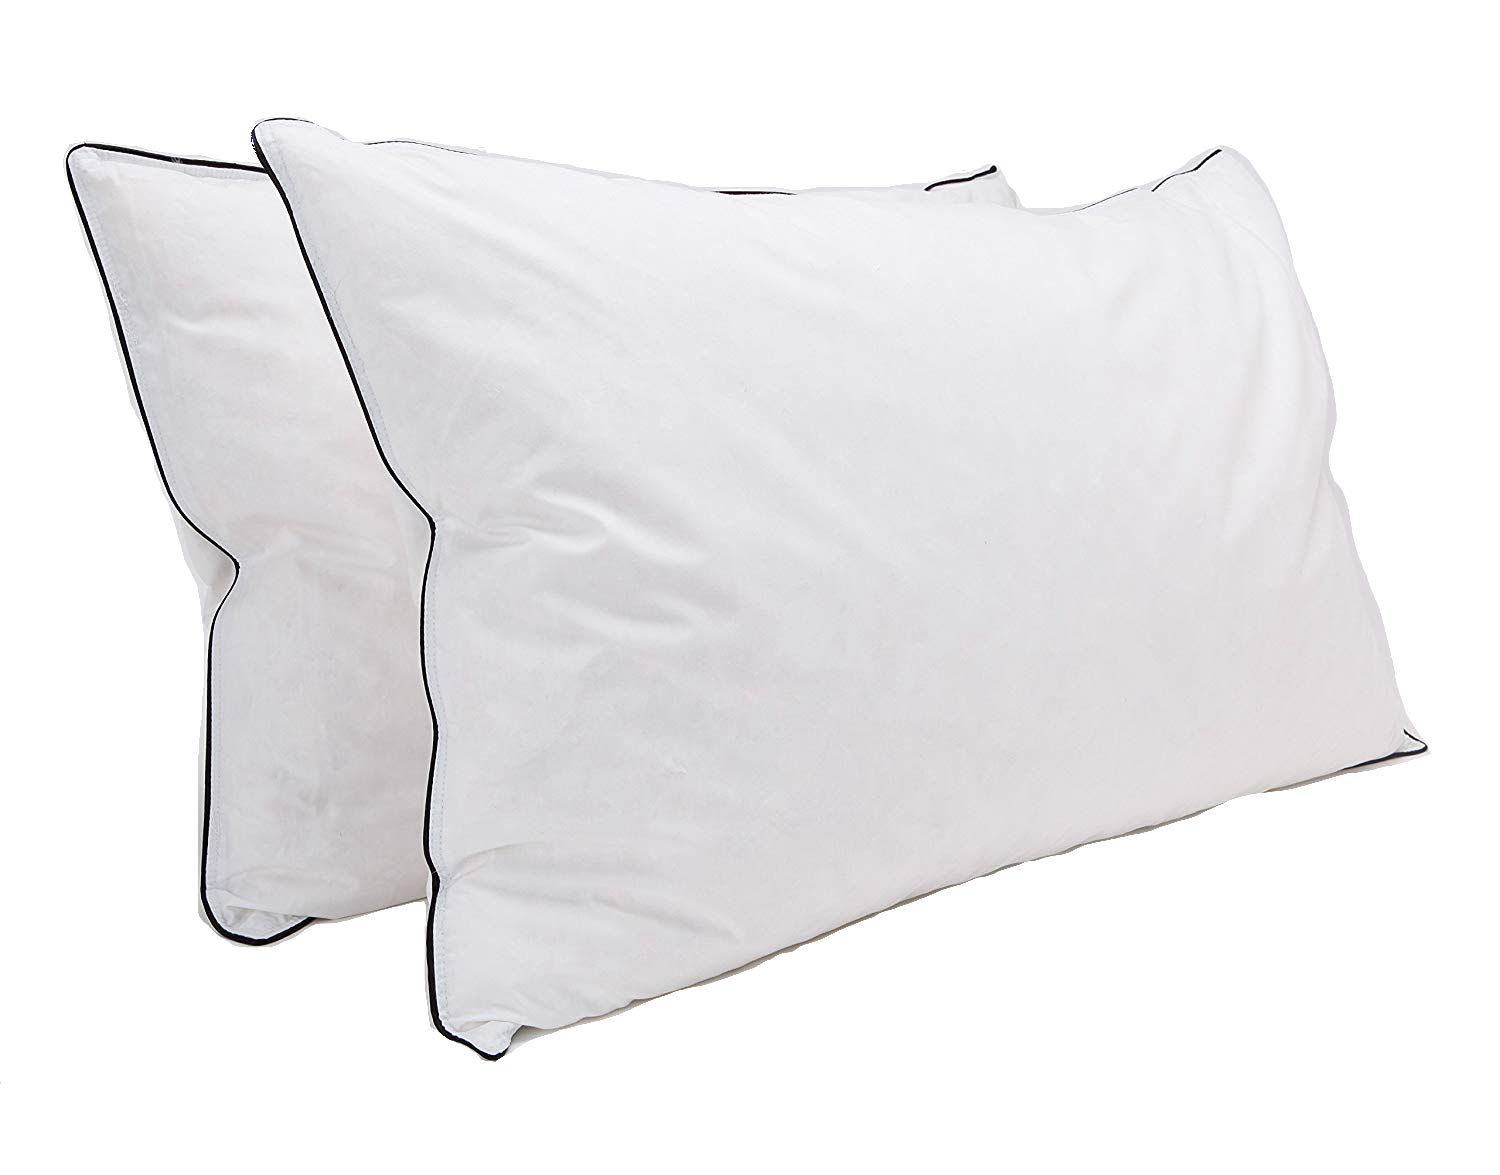 AmigoZone Luxury Duck Feather Pillows 100% Cotton Feather Proof Cover (Pack Of 4) Nights uk Ltd